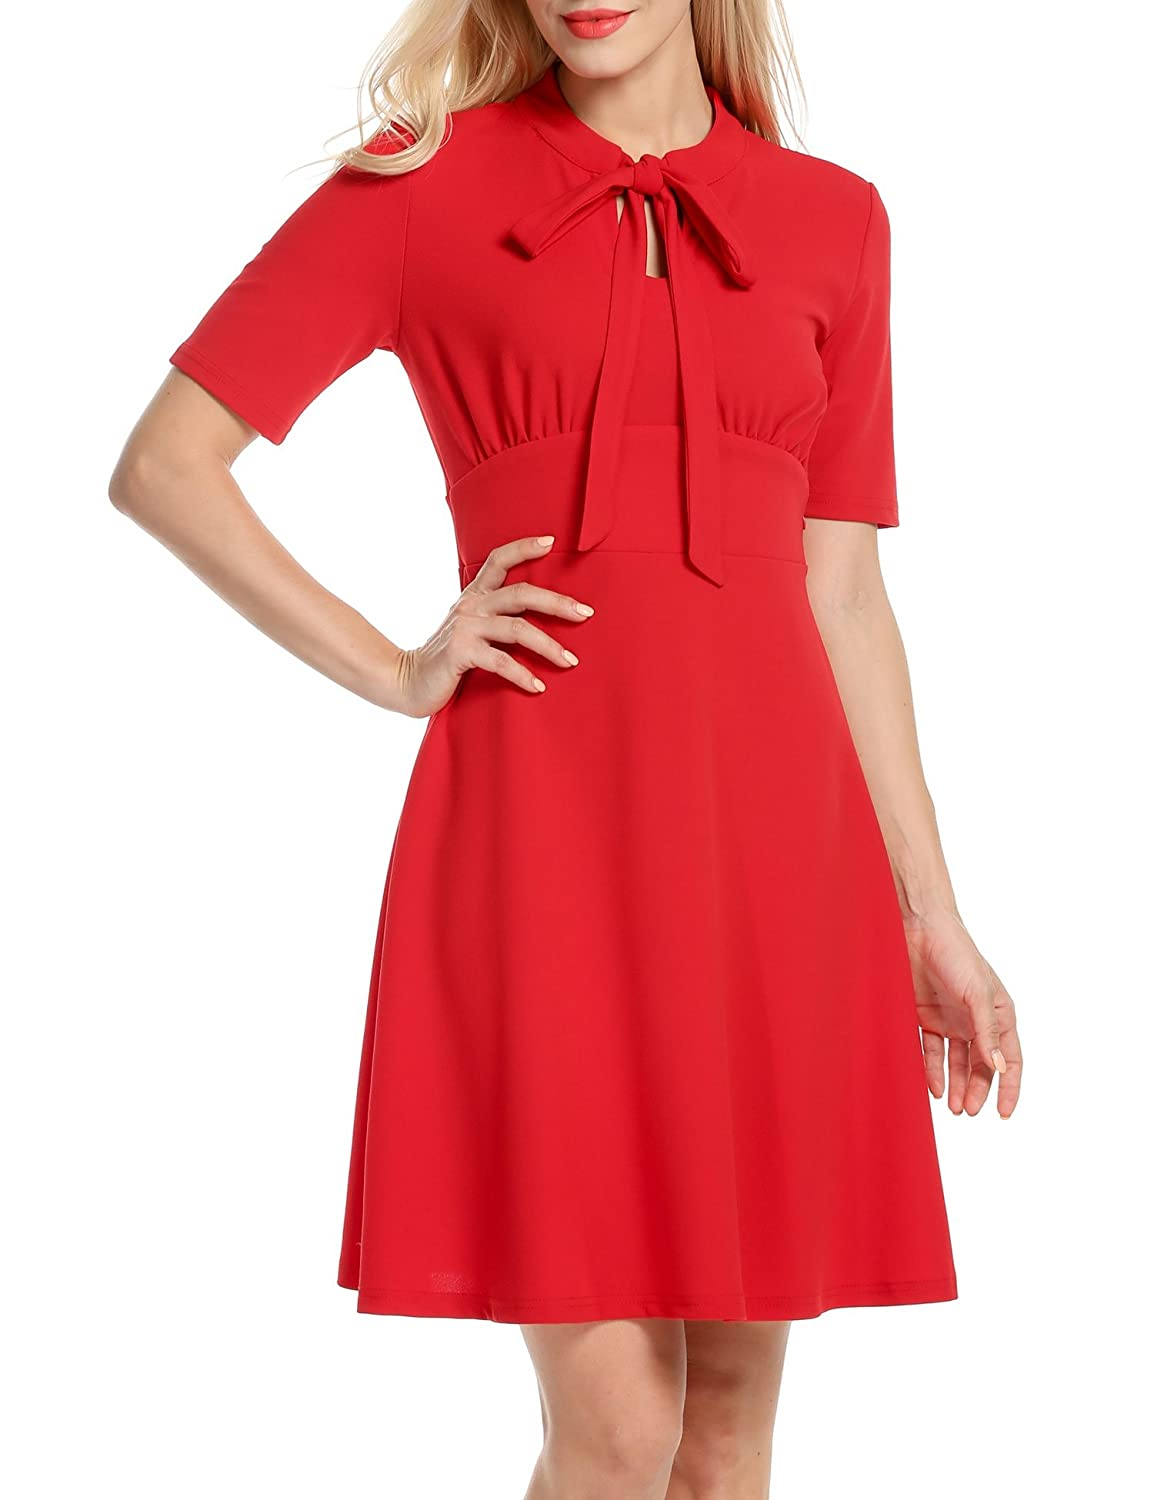 ANGVNS Women's Vintage Style Retro 1940s Mother Of The Bride Dresses *AMH005464